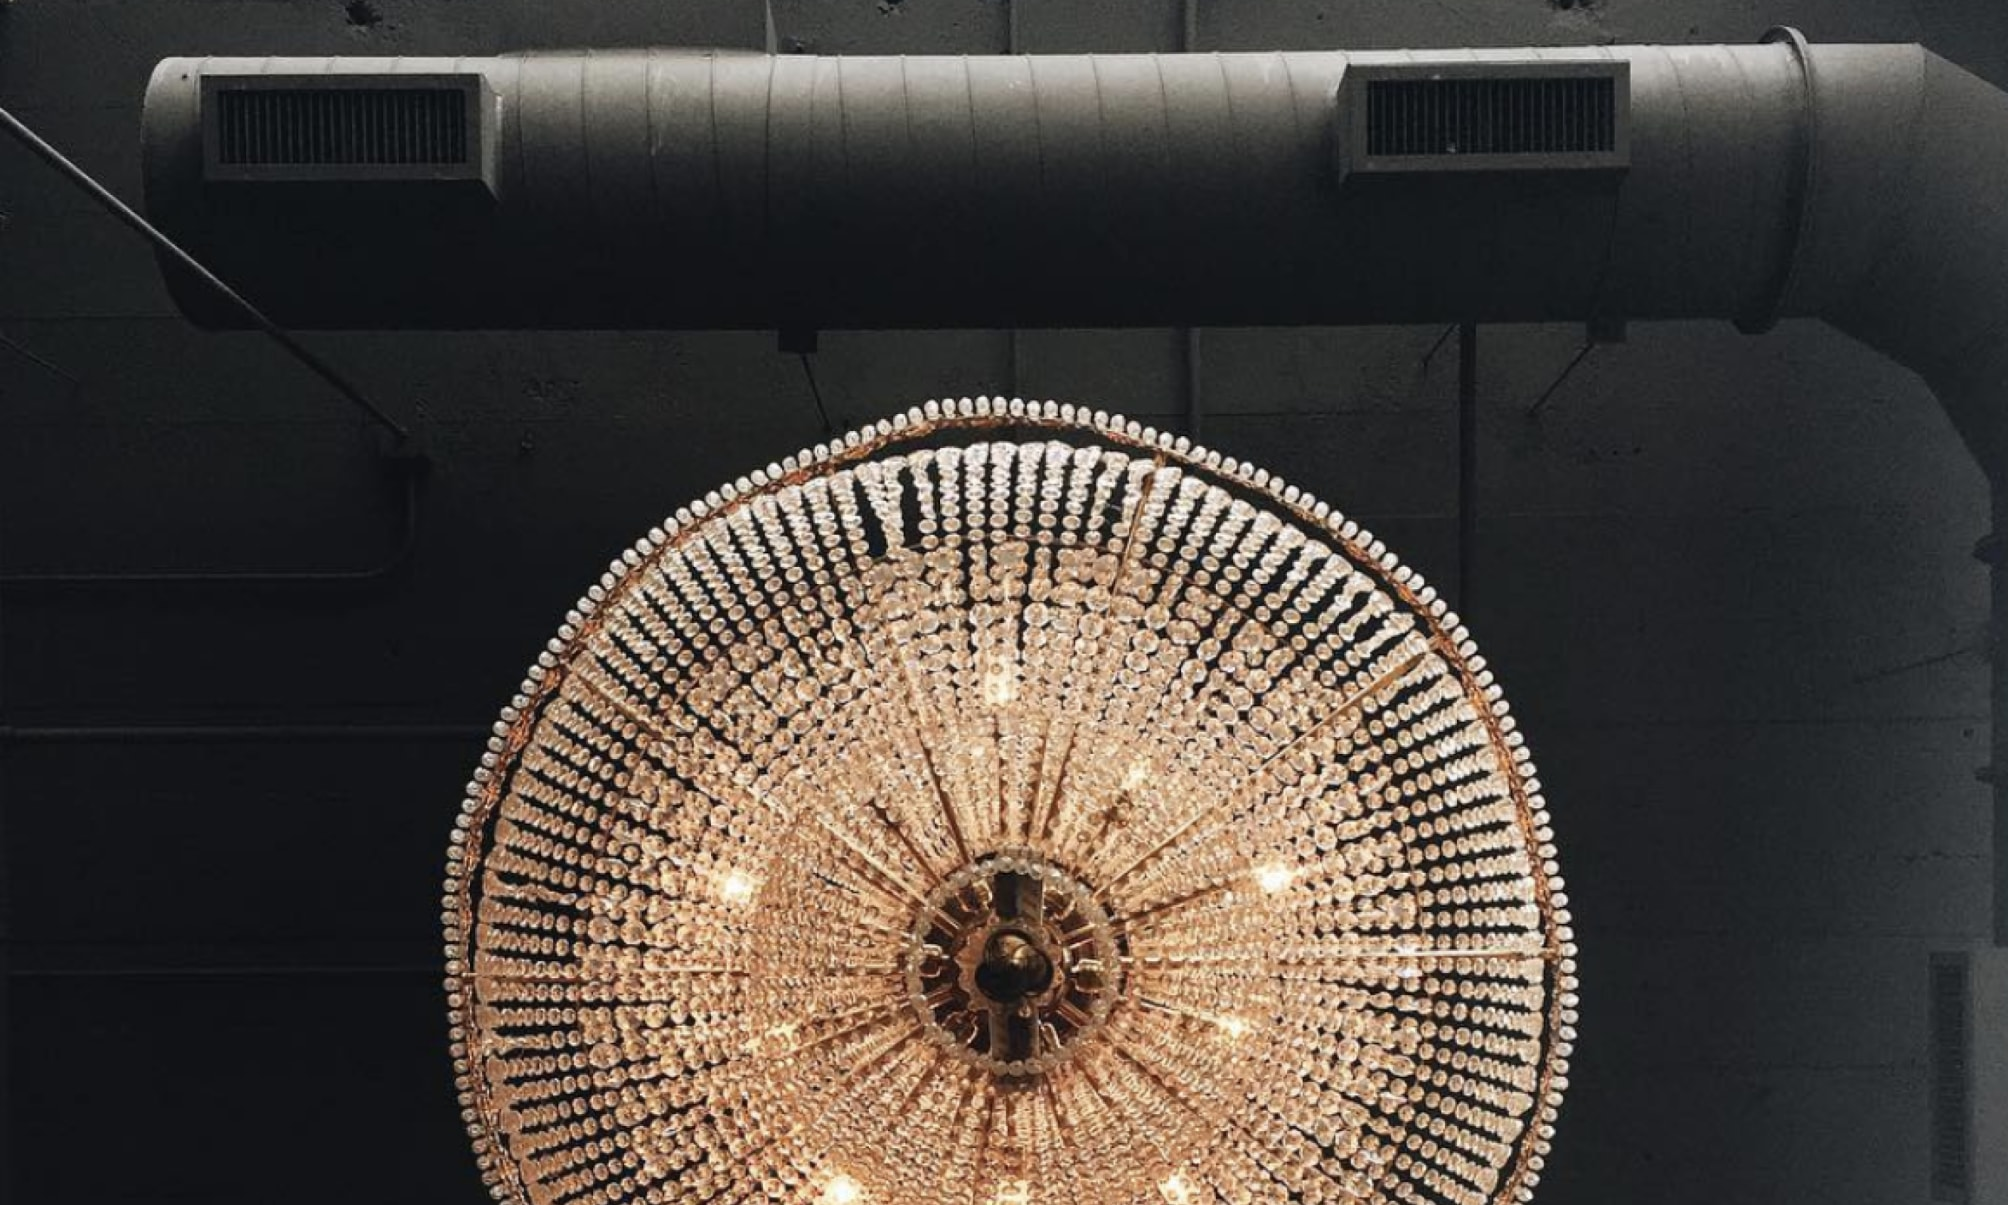 A chandelier and air conditioning pipe attached to a ceiling.